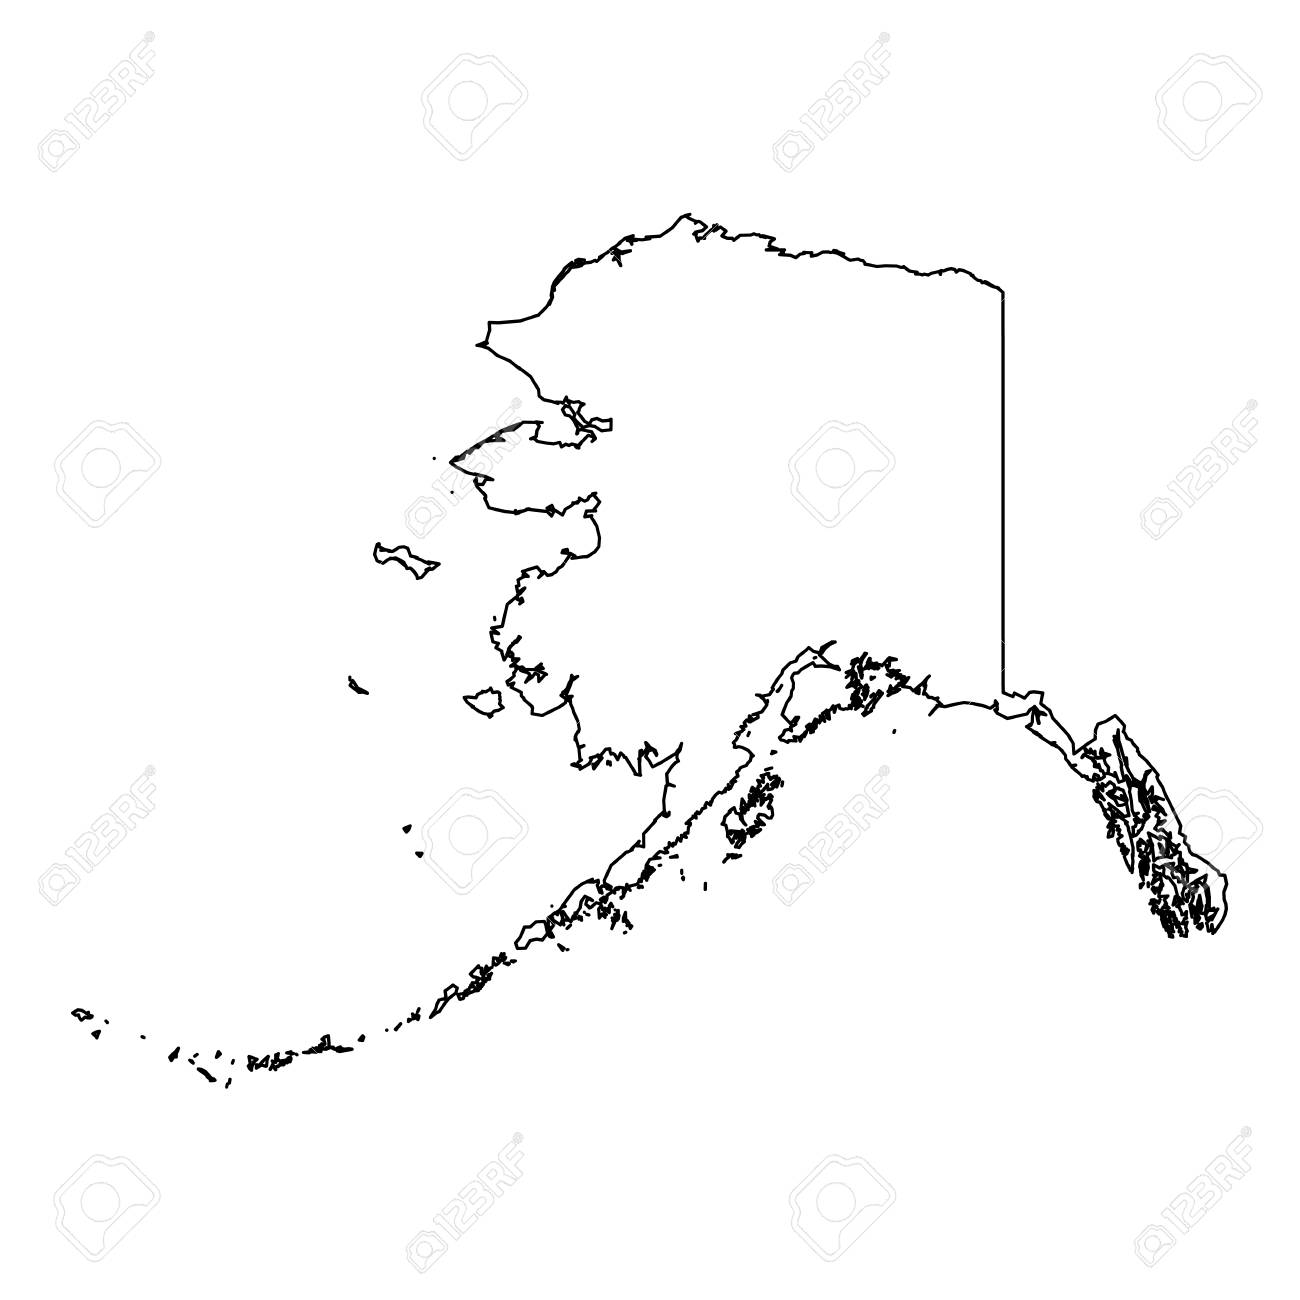 Alaska State Of Usa Solid Black Outline Map Of Country Area